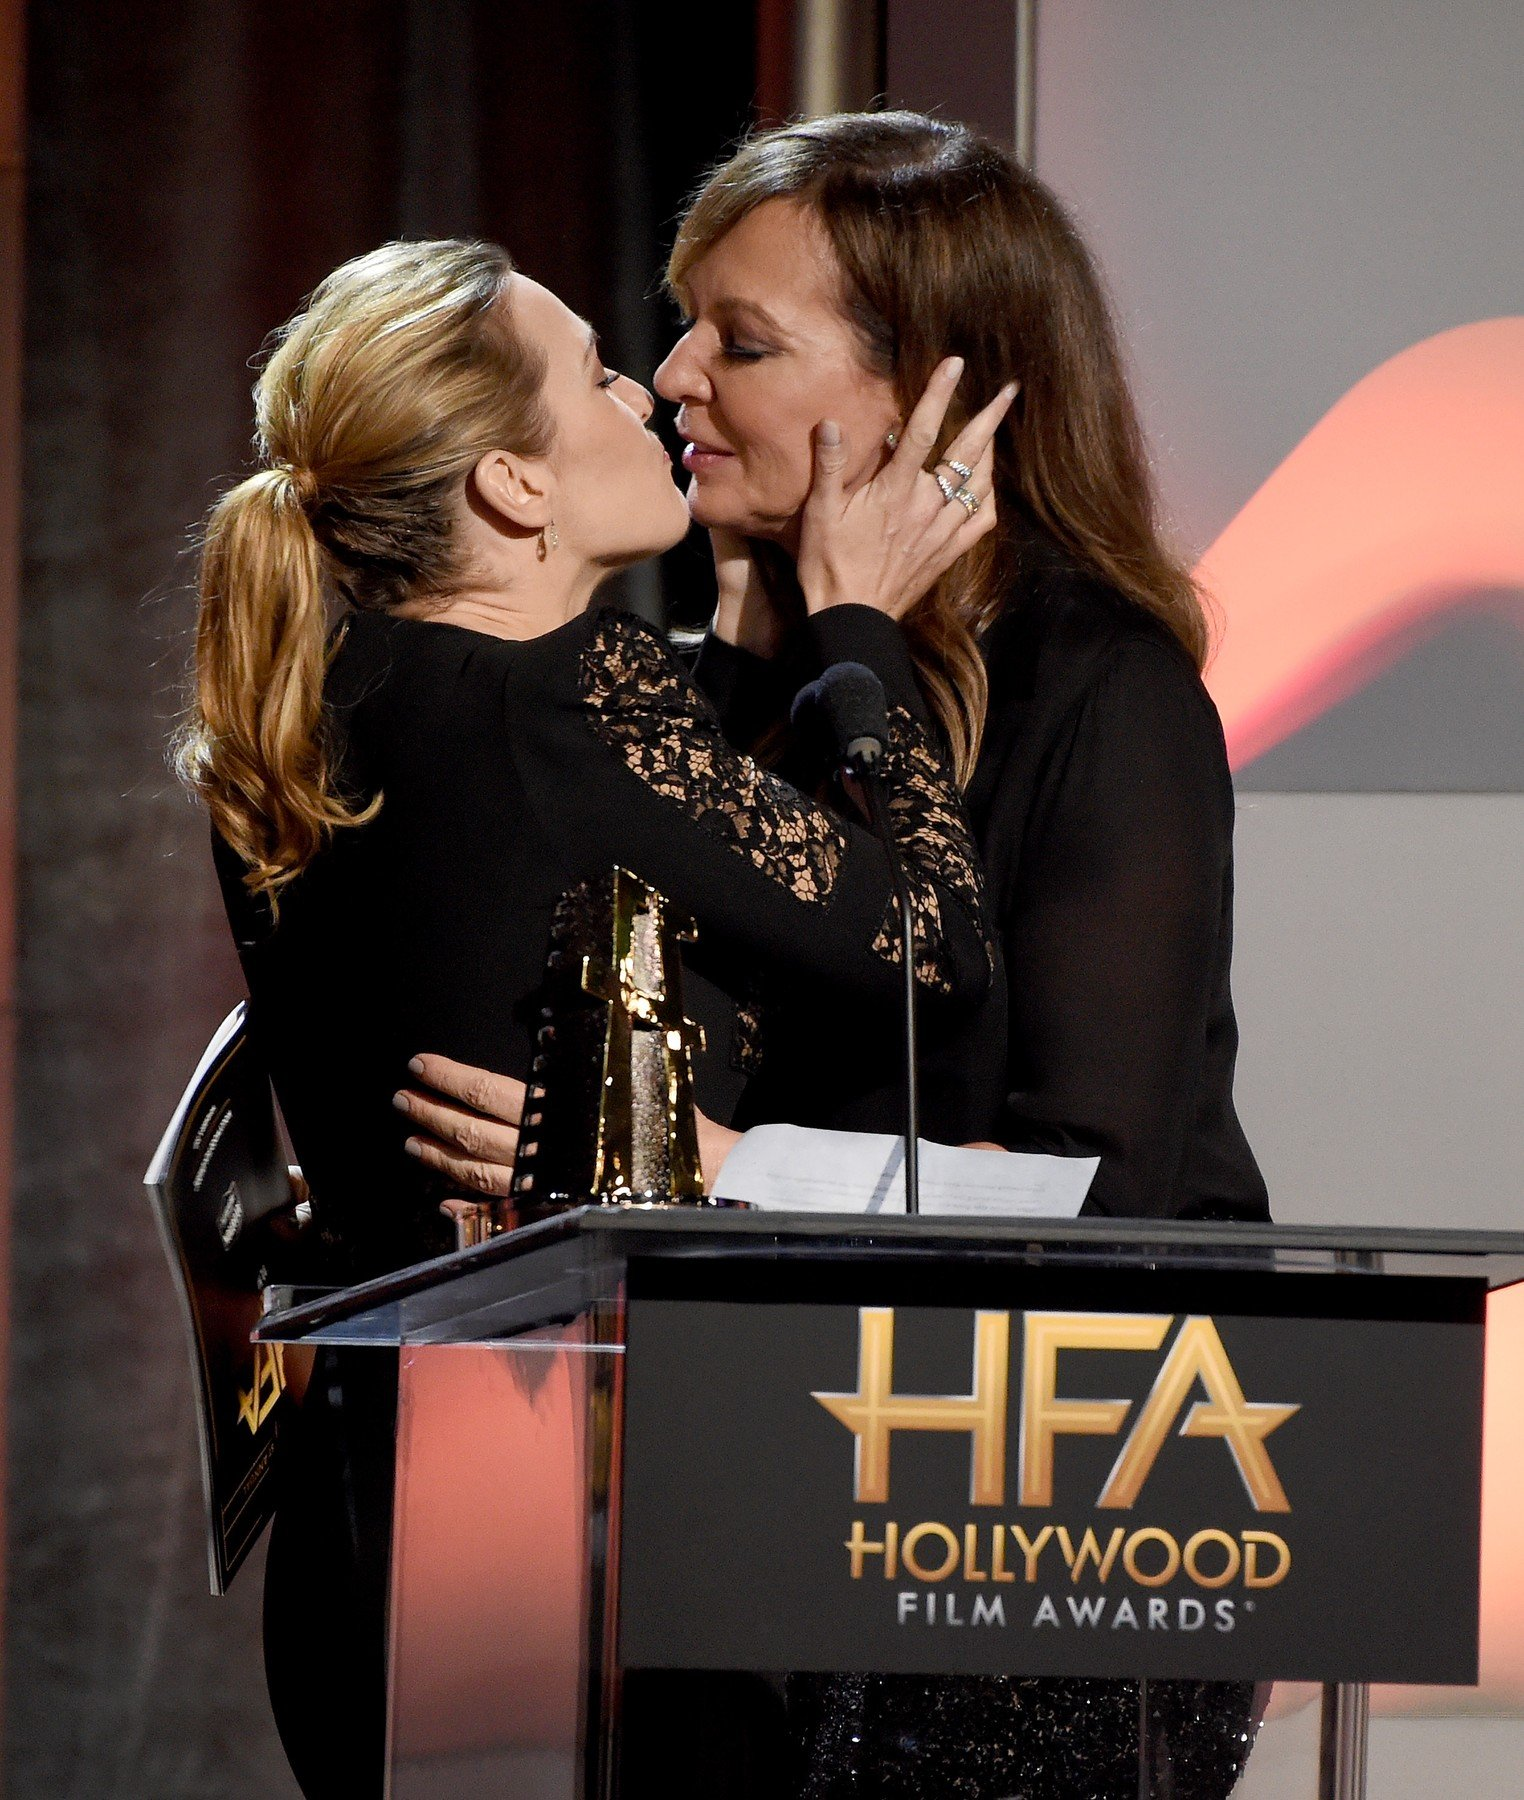 BEVERLY HILLS - NOVEMBER 5: Kate Winslet and Allison Janney at the 2017 Hollywood Film Awards at the Beverly Hilton on November 5, 2017 in Beverly Hills, California., Image: 354721215, License: Rights-managed, Restrictions: *** World Rights ***, Model Release: no, Credit line: Profimedia, SIPA USA